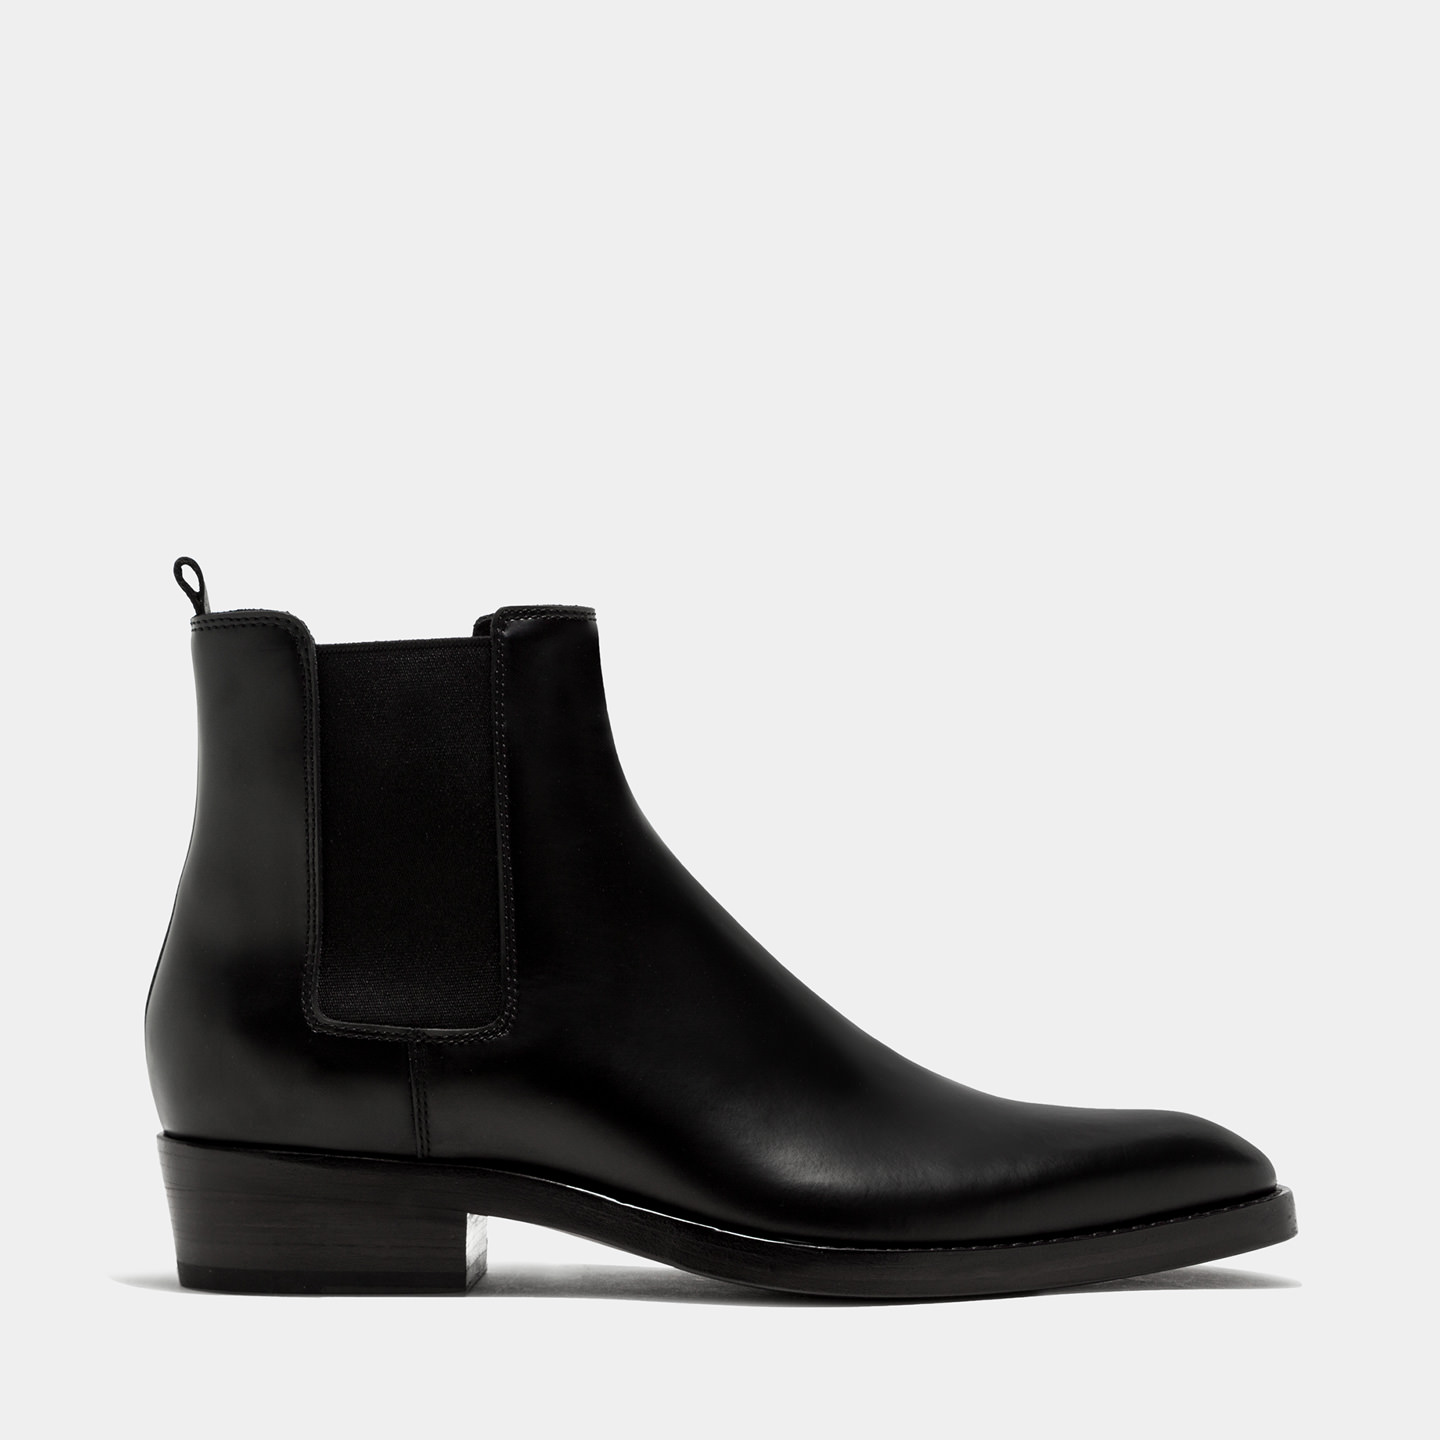 BUTTERO: QUENTIN ANKLE BOOTS IN BLACK BRUSHED LEATHER